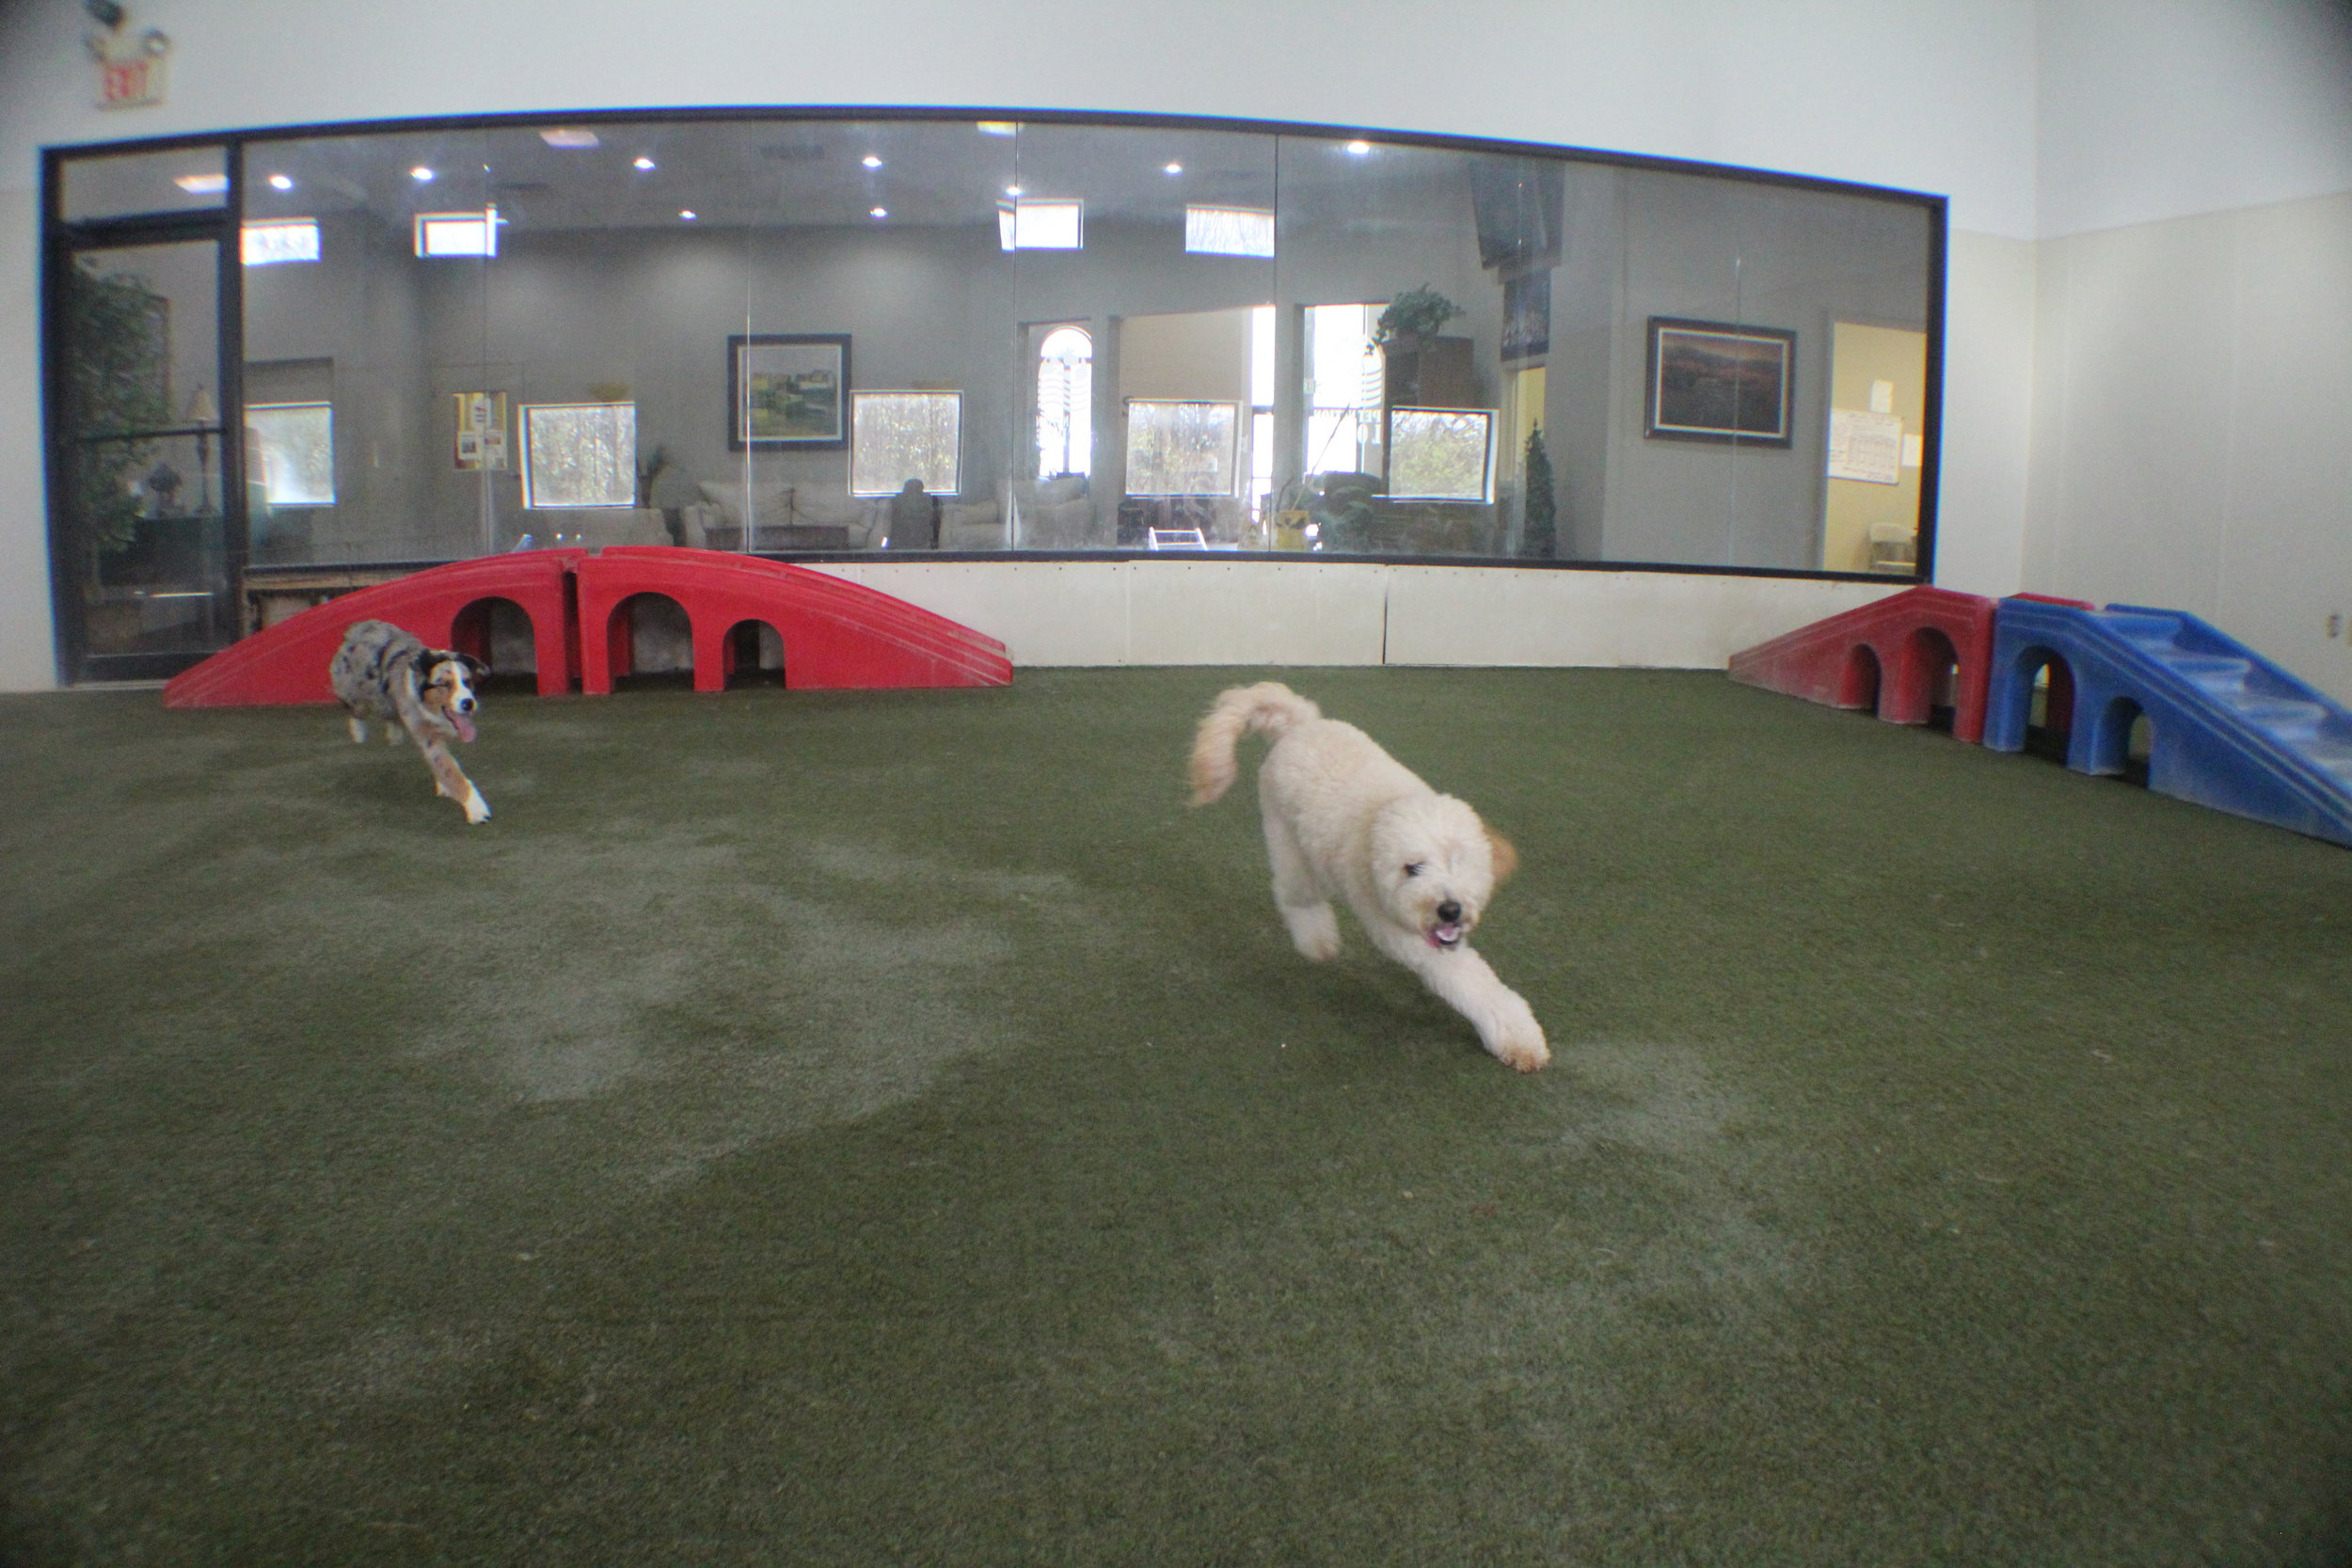 Whether indoors or outdoors Ziggy is always on the run.  Making friends has always come easy to Ziggs.  He is the equivalent to the popular kid in school.  His happiness and energy make him a perfect playmate with any dog that's boarding or just here for daycare.  He's also popular among staff here.  So overall everyone is of good old Ziggs!